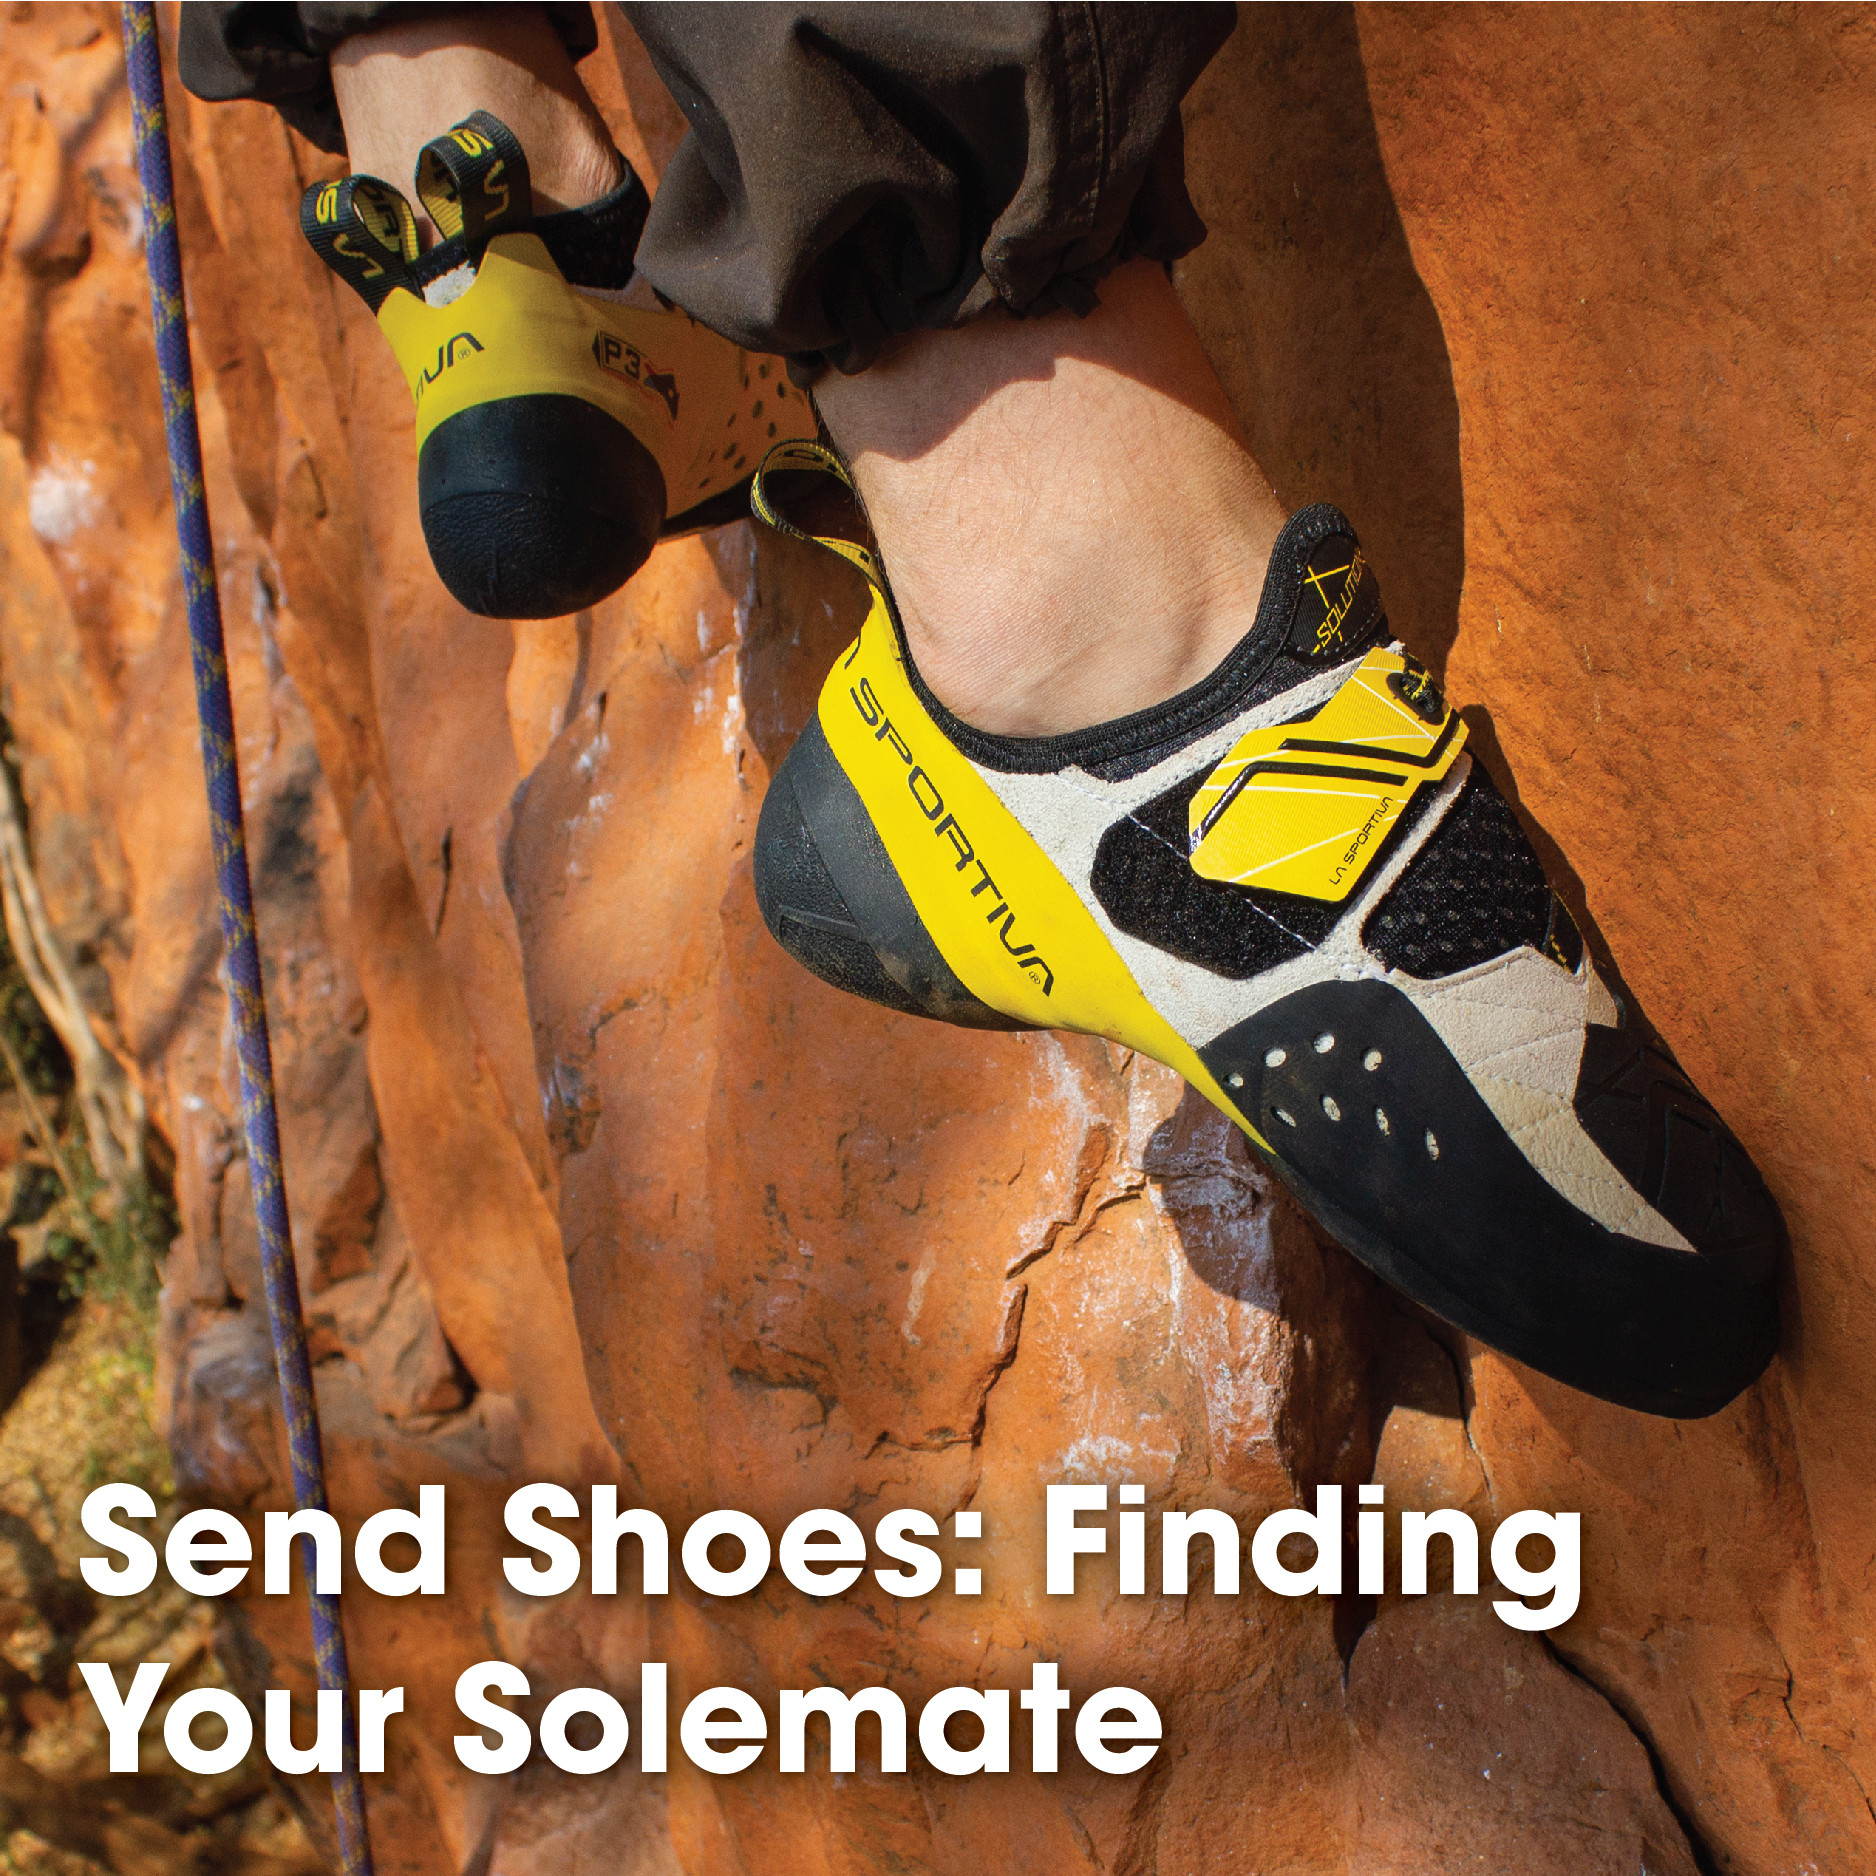 Send Shoes: Finding Your Solemate